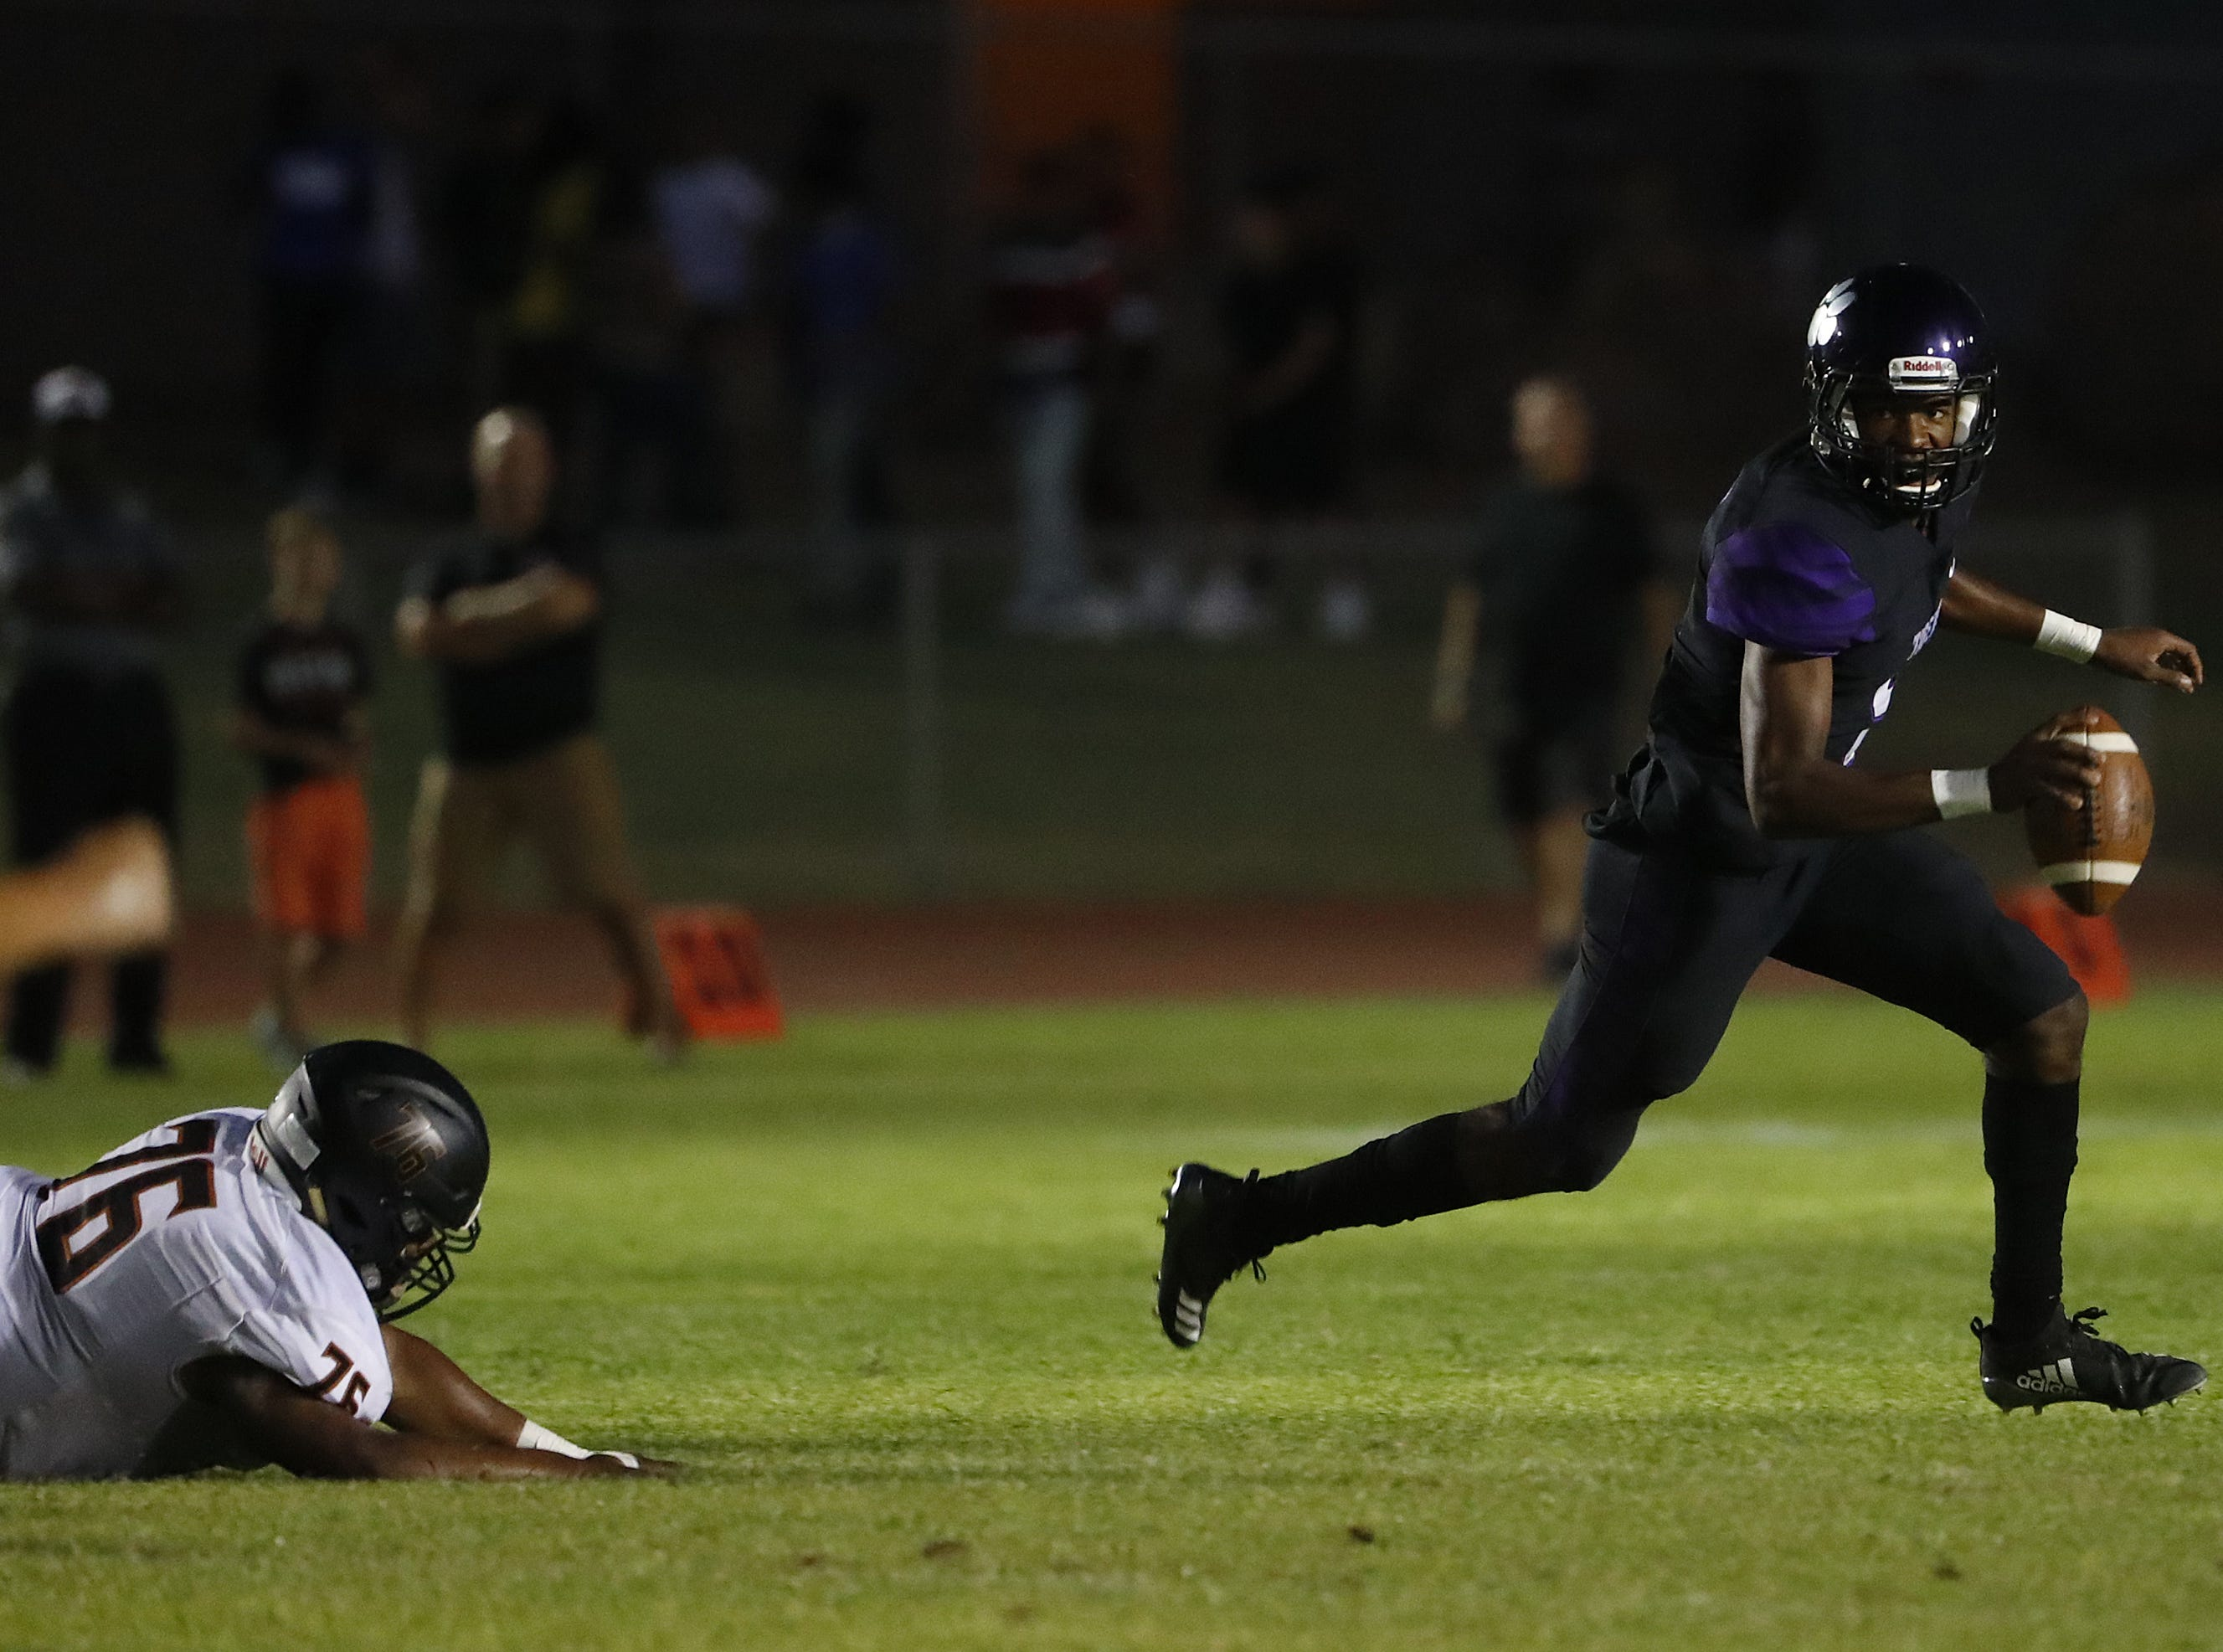 Millennium's Zareq Brown (5) scrambles away from Desert Millennium's Isaac Oliver (26) breaks a tackle from Desert Edge's Isaiah Williams (76) during a game at Millennium High School in Goodyear, Ariz. on Sept. 7, 2018.